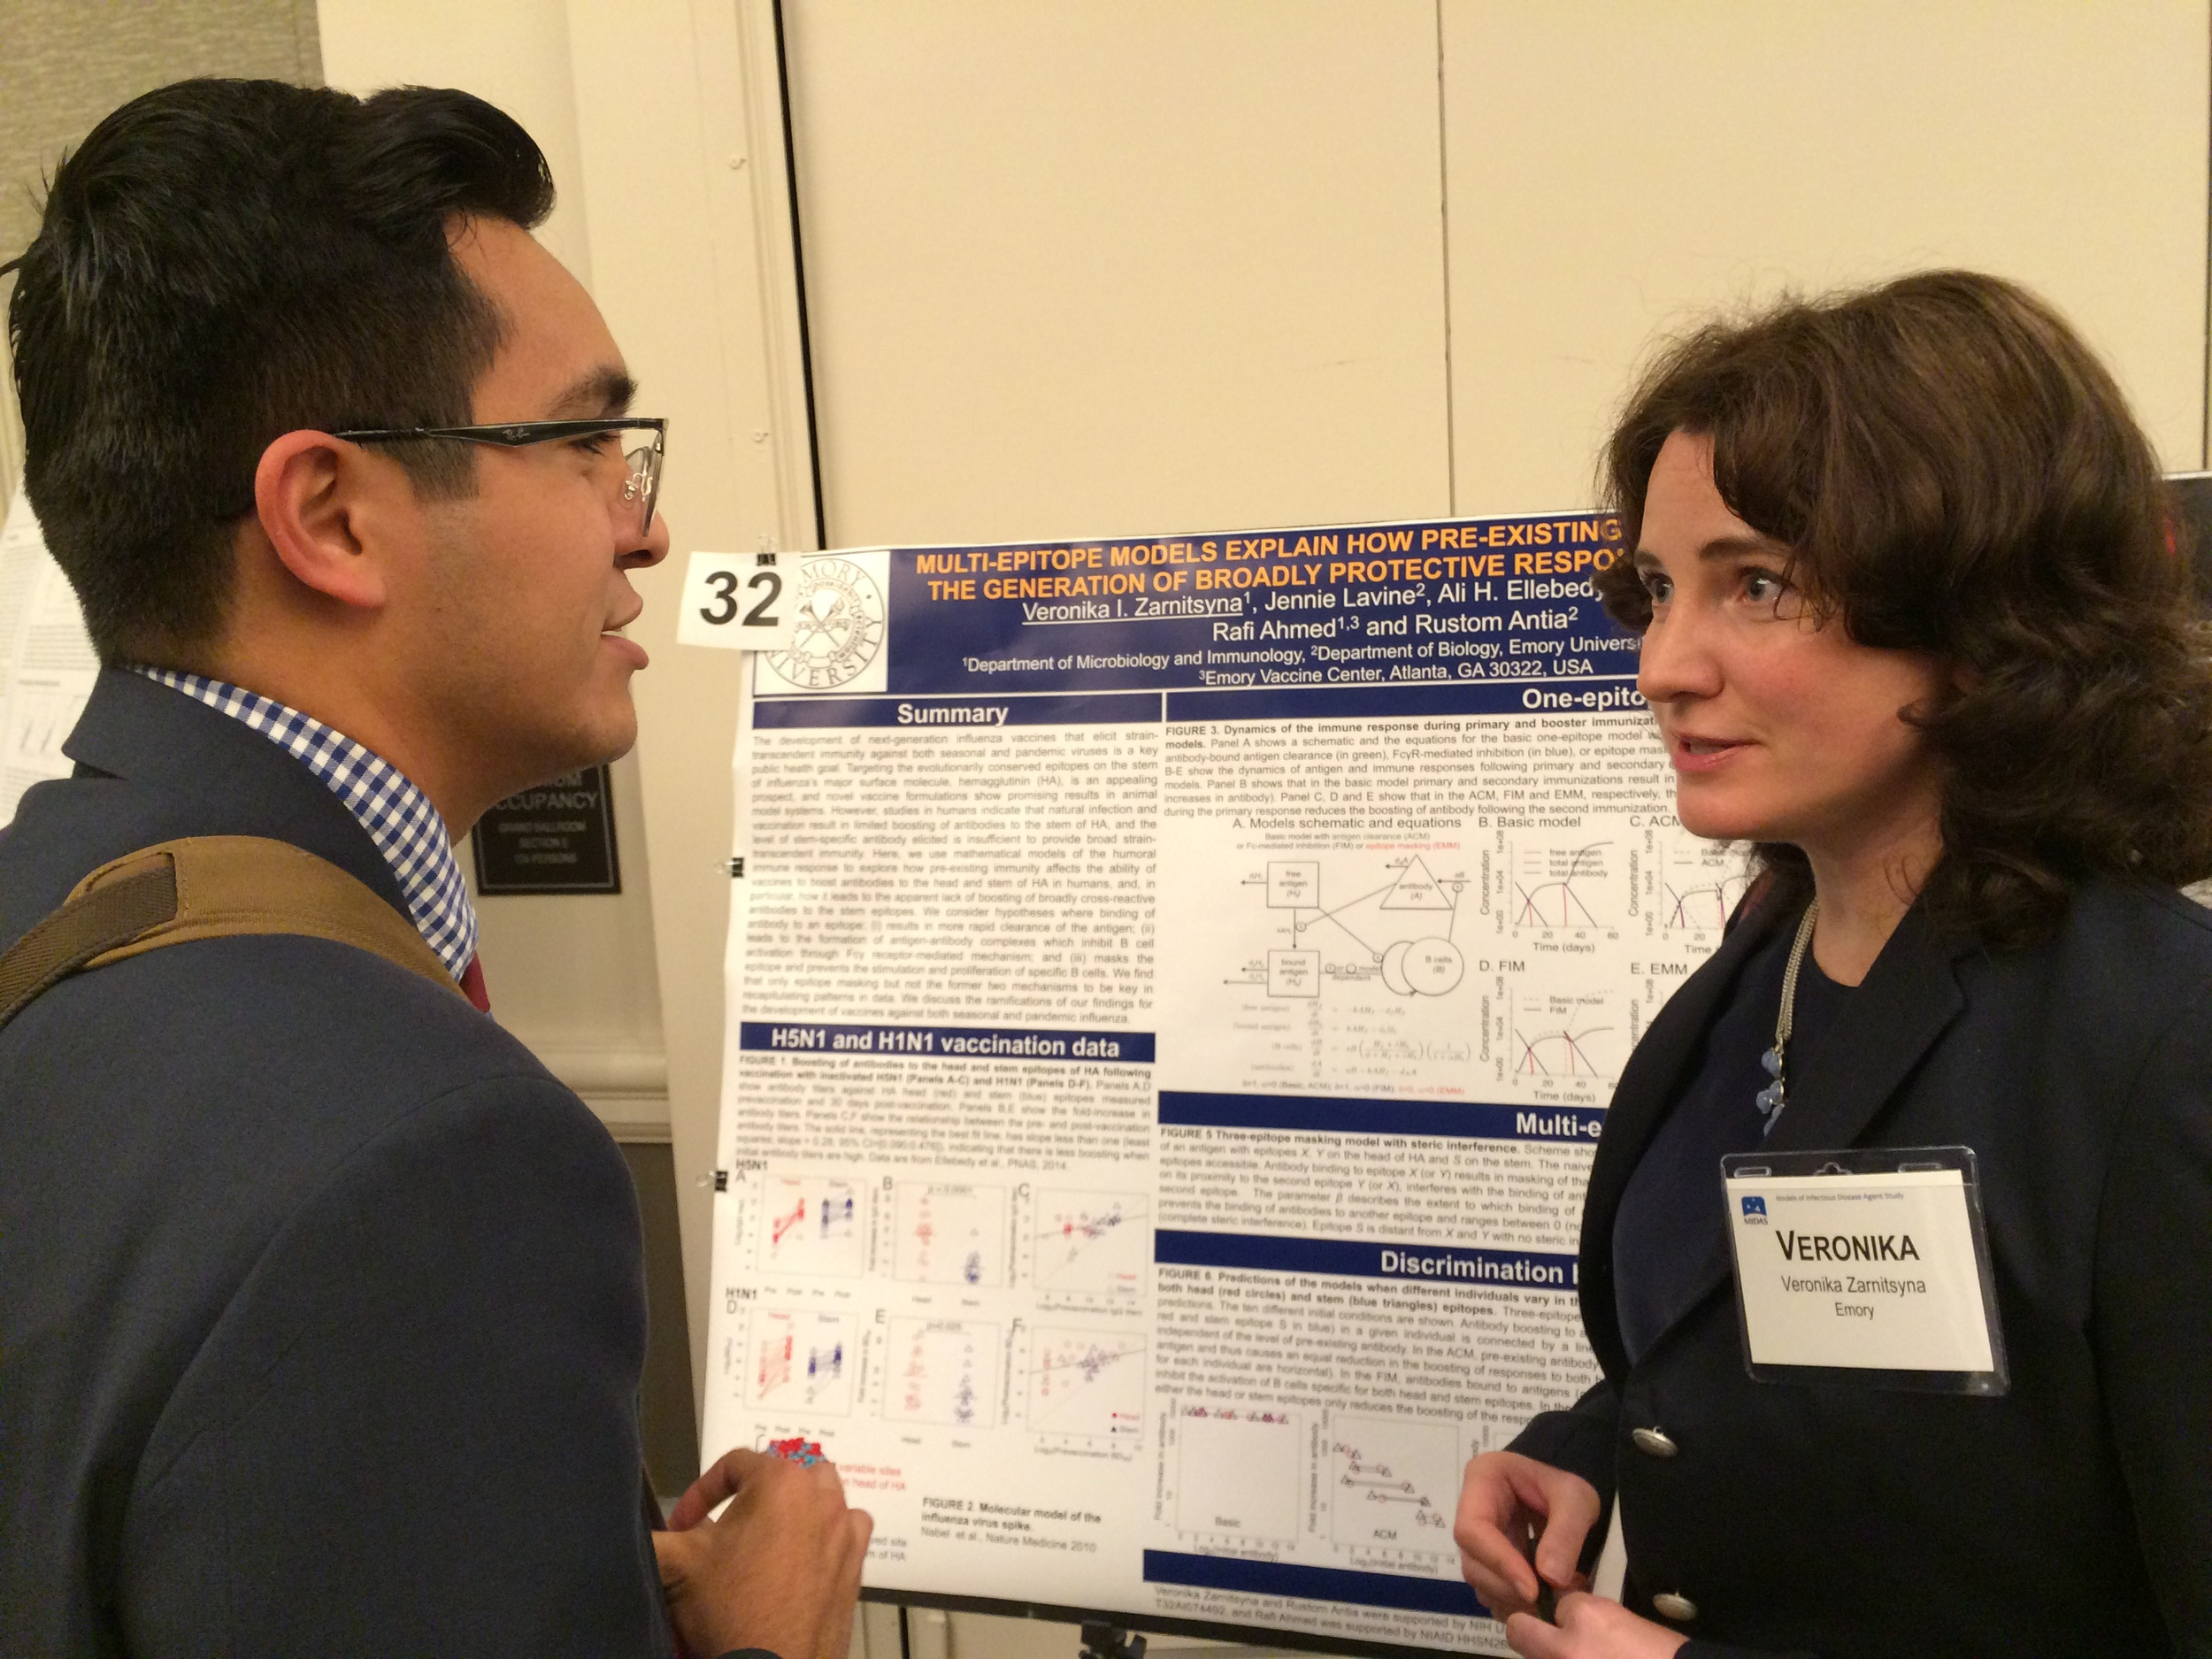 Student Ivan Solis speaking with Veronika Zarnitsyna (CIDID/Emory).